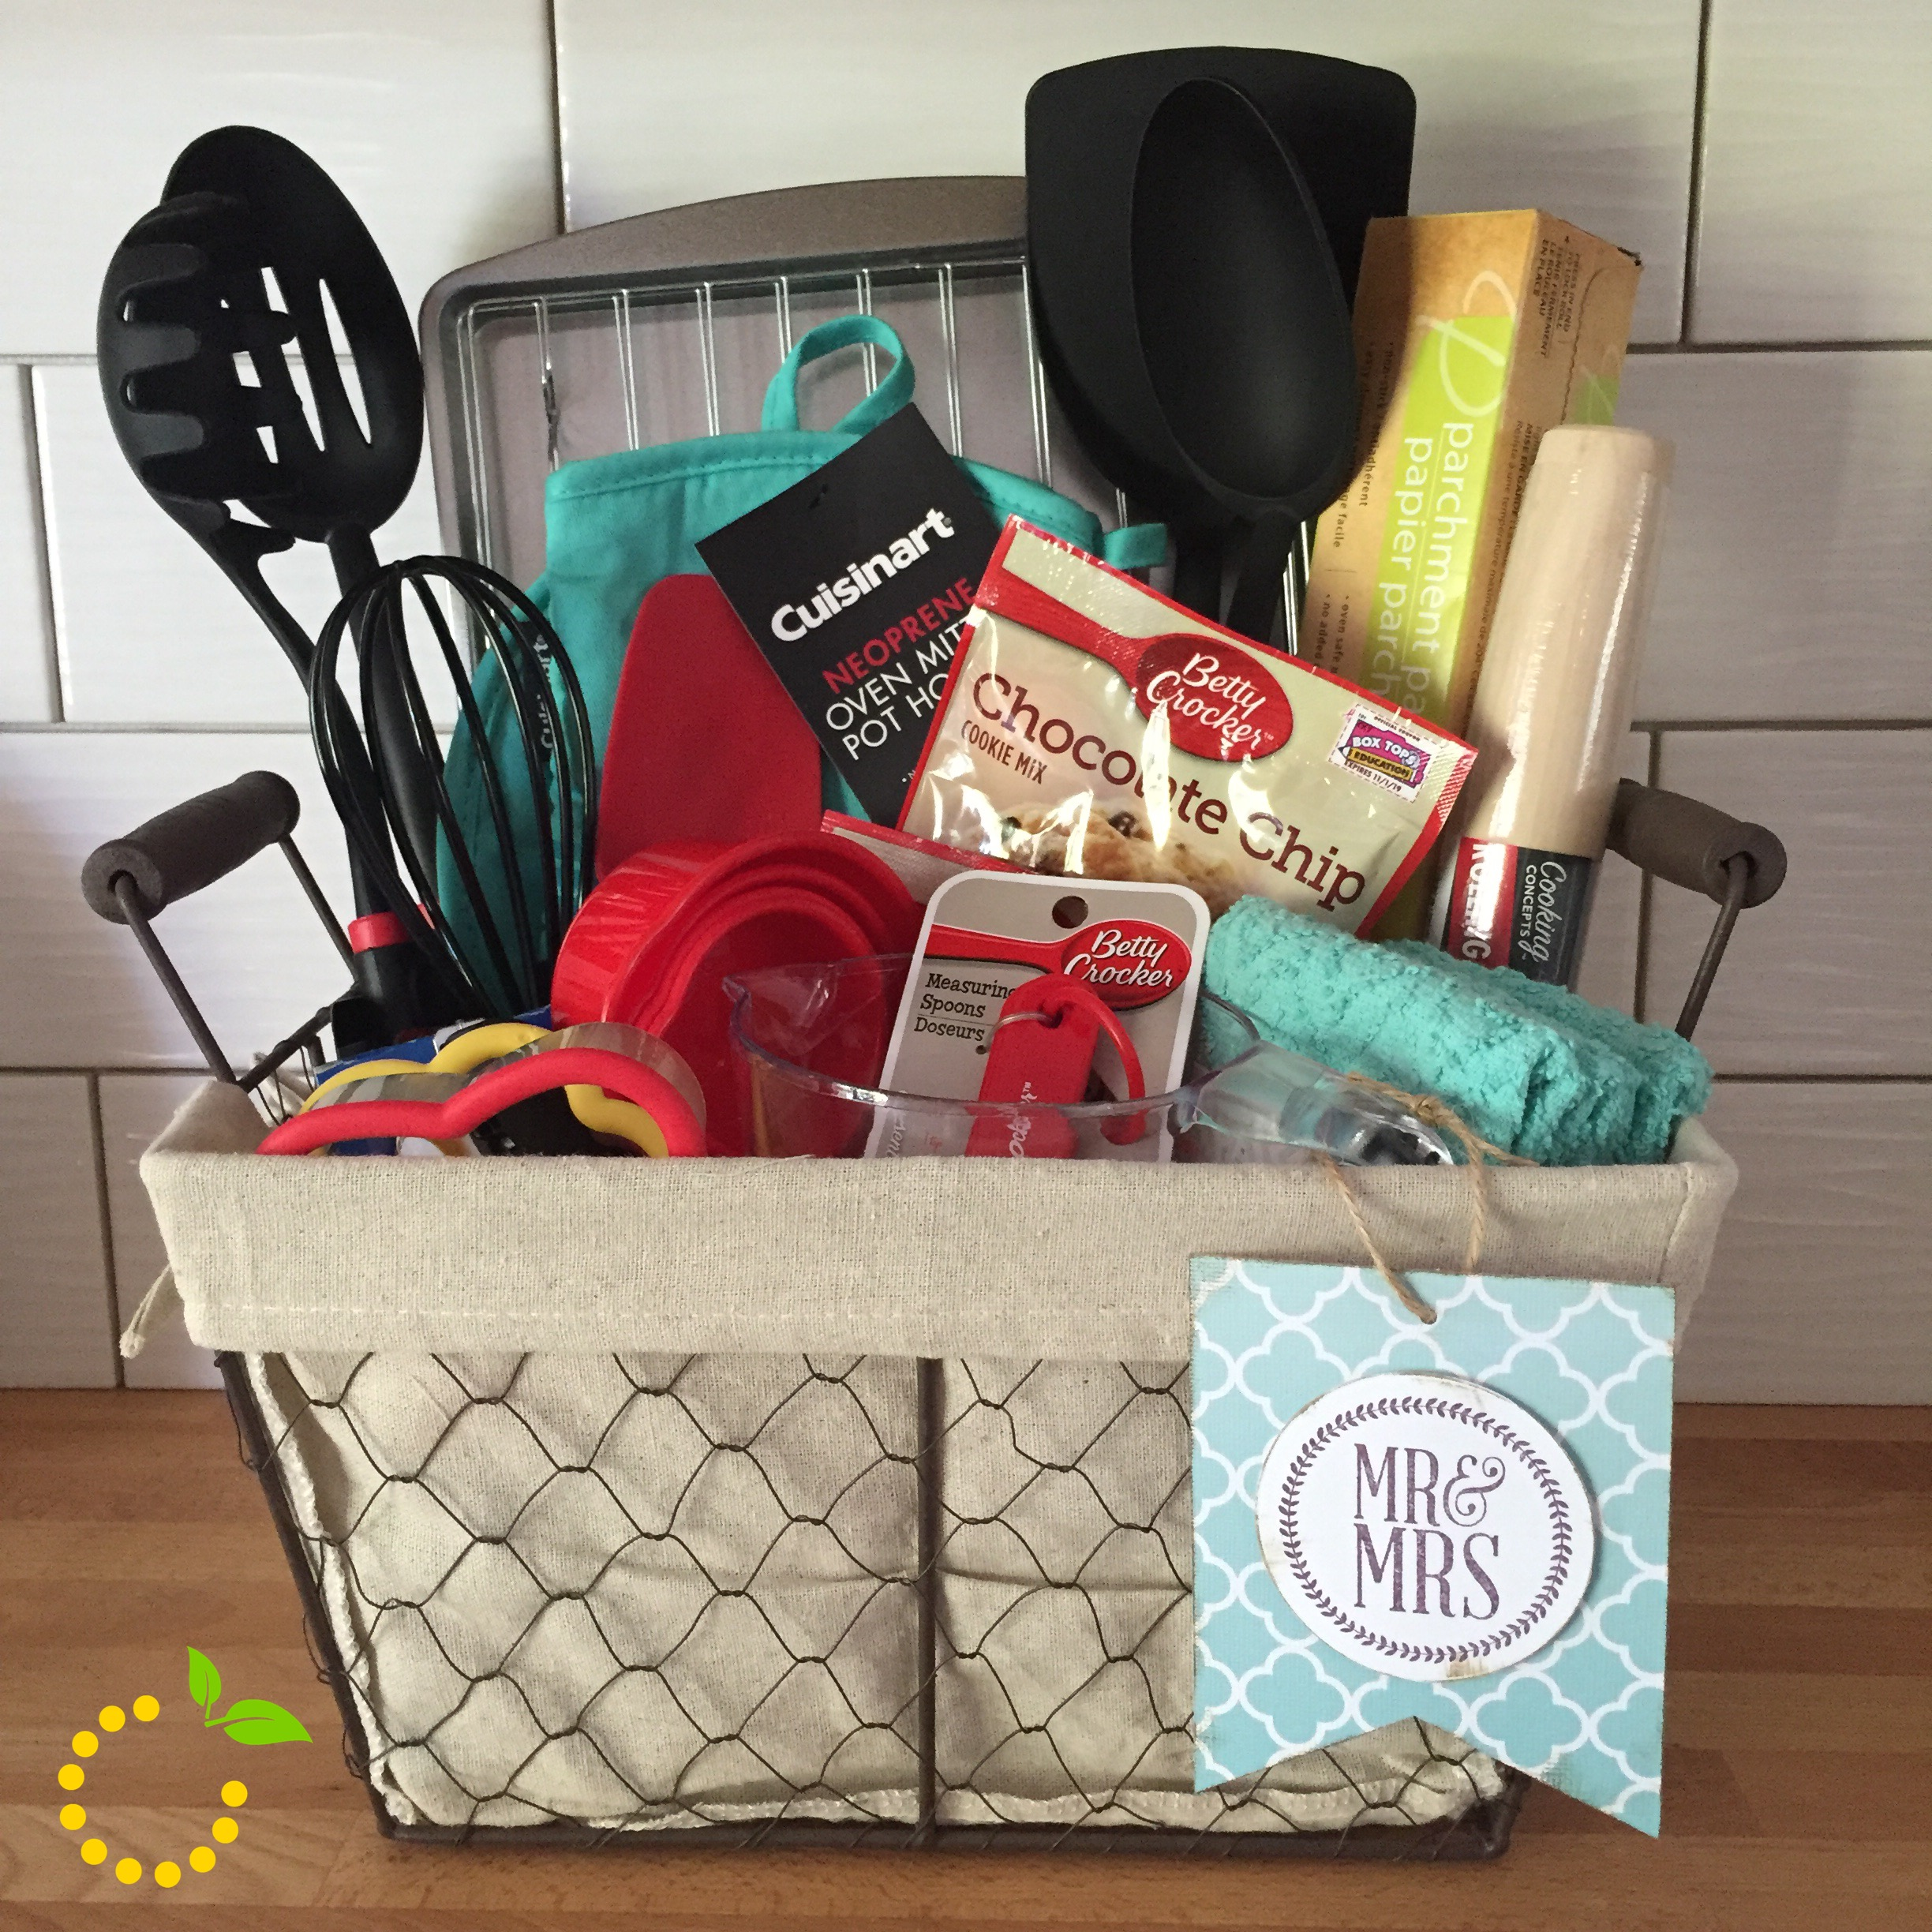 Wedding Gift For Friend Who Has Everything: Do It Yourself Gift Basket Idea · Sweet Lemon Made